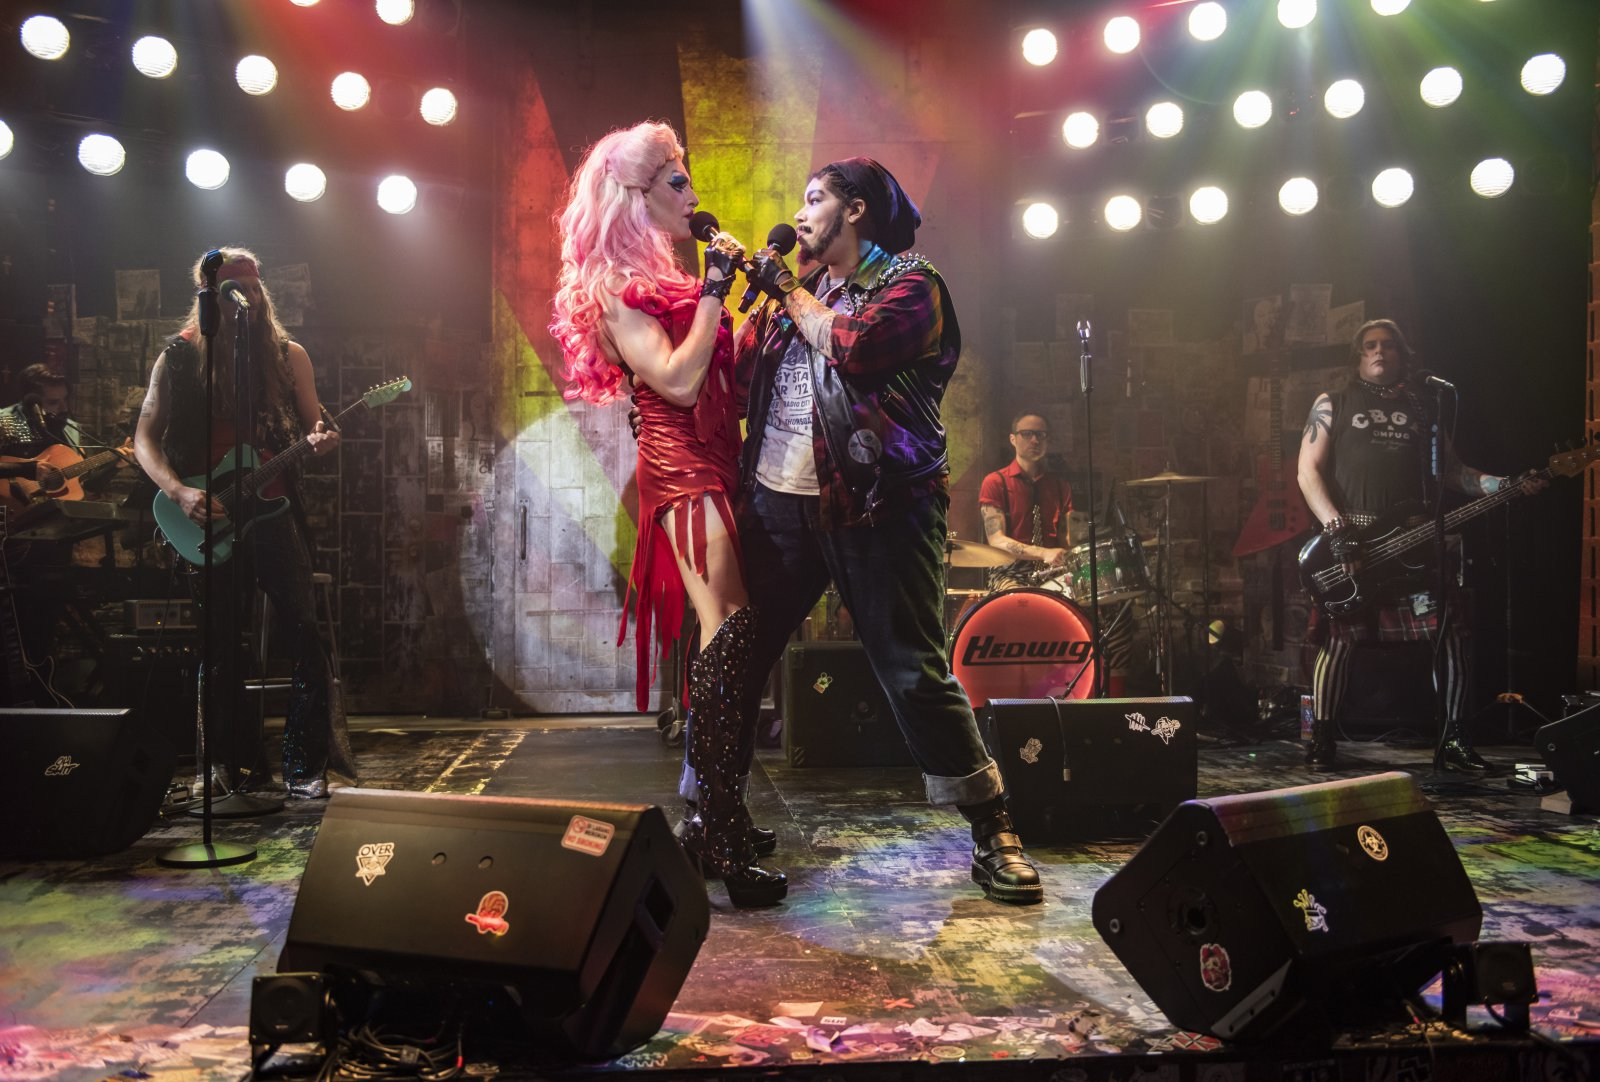 Milwaukee Repertory Theater presents Hedwig and the Angry Inch in the Stiemke Studio January 28 – March 8, 2020. Left to right: Matt Rodin and Bethany Thomas with the company of Hedwig and the Angry Inch.